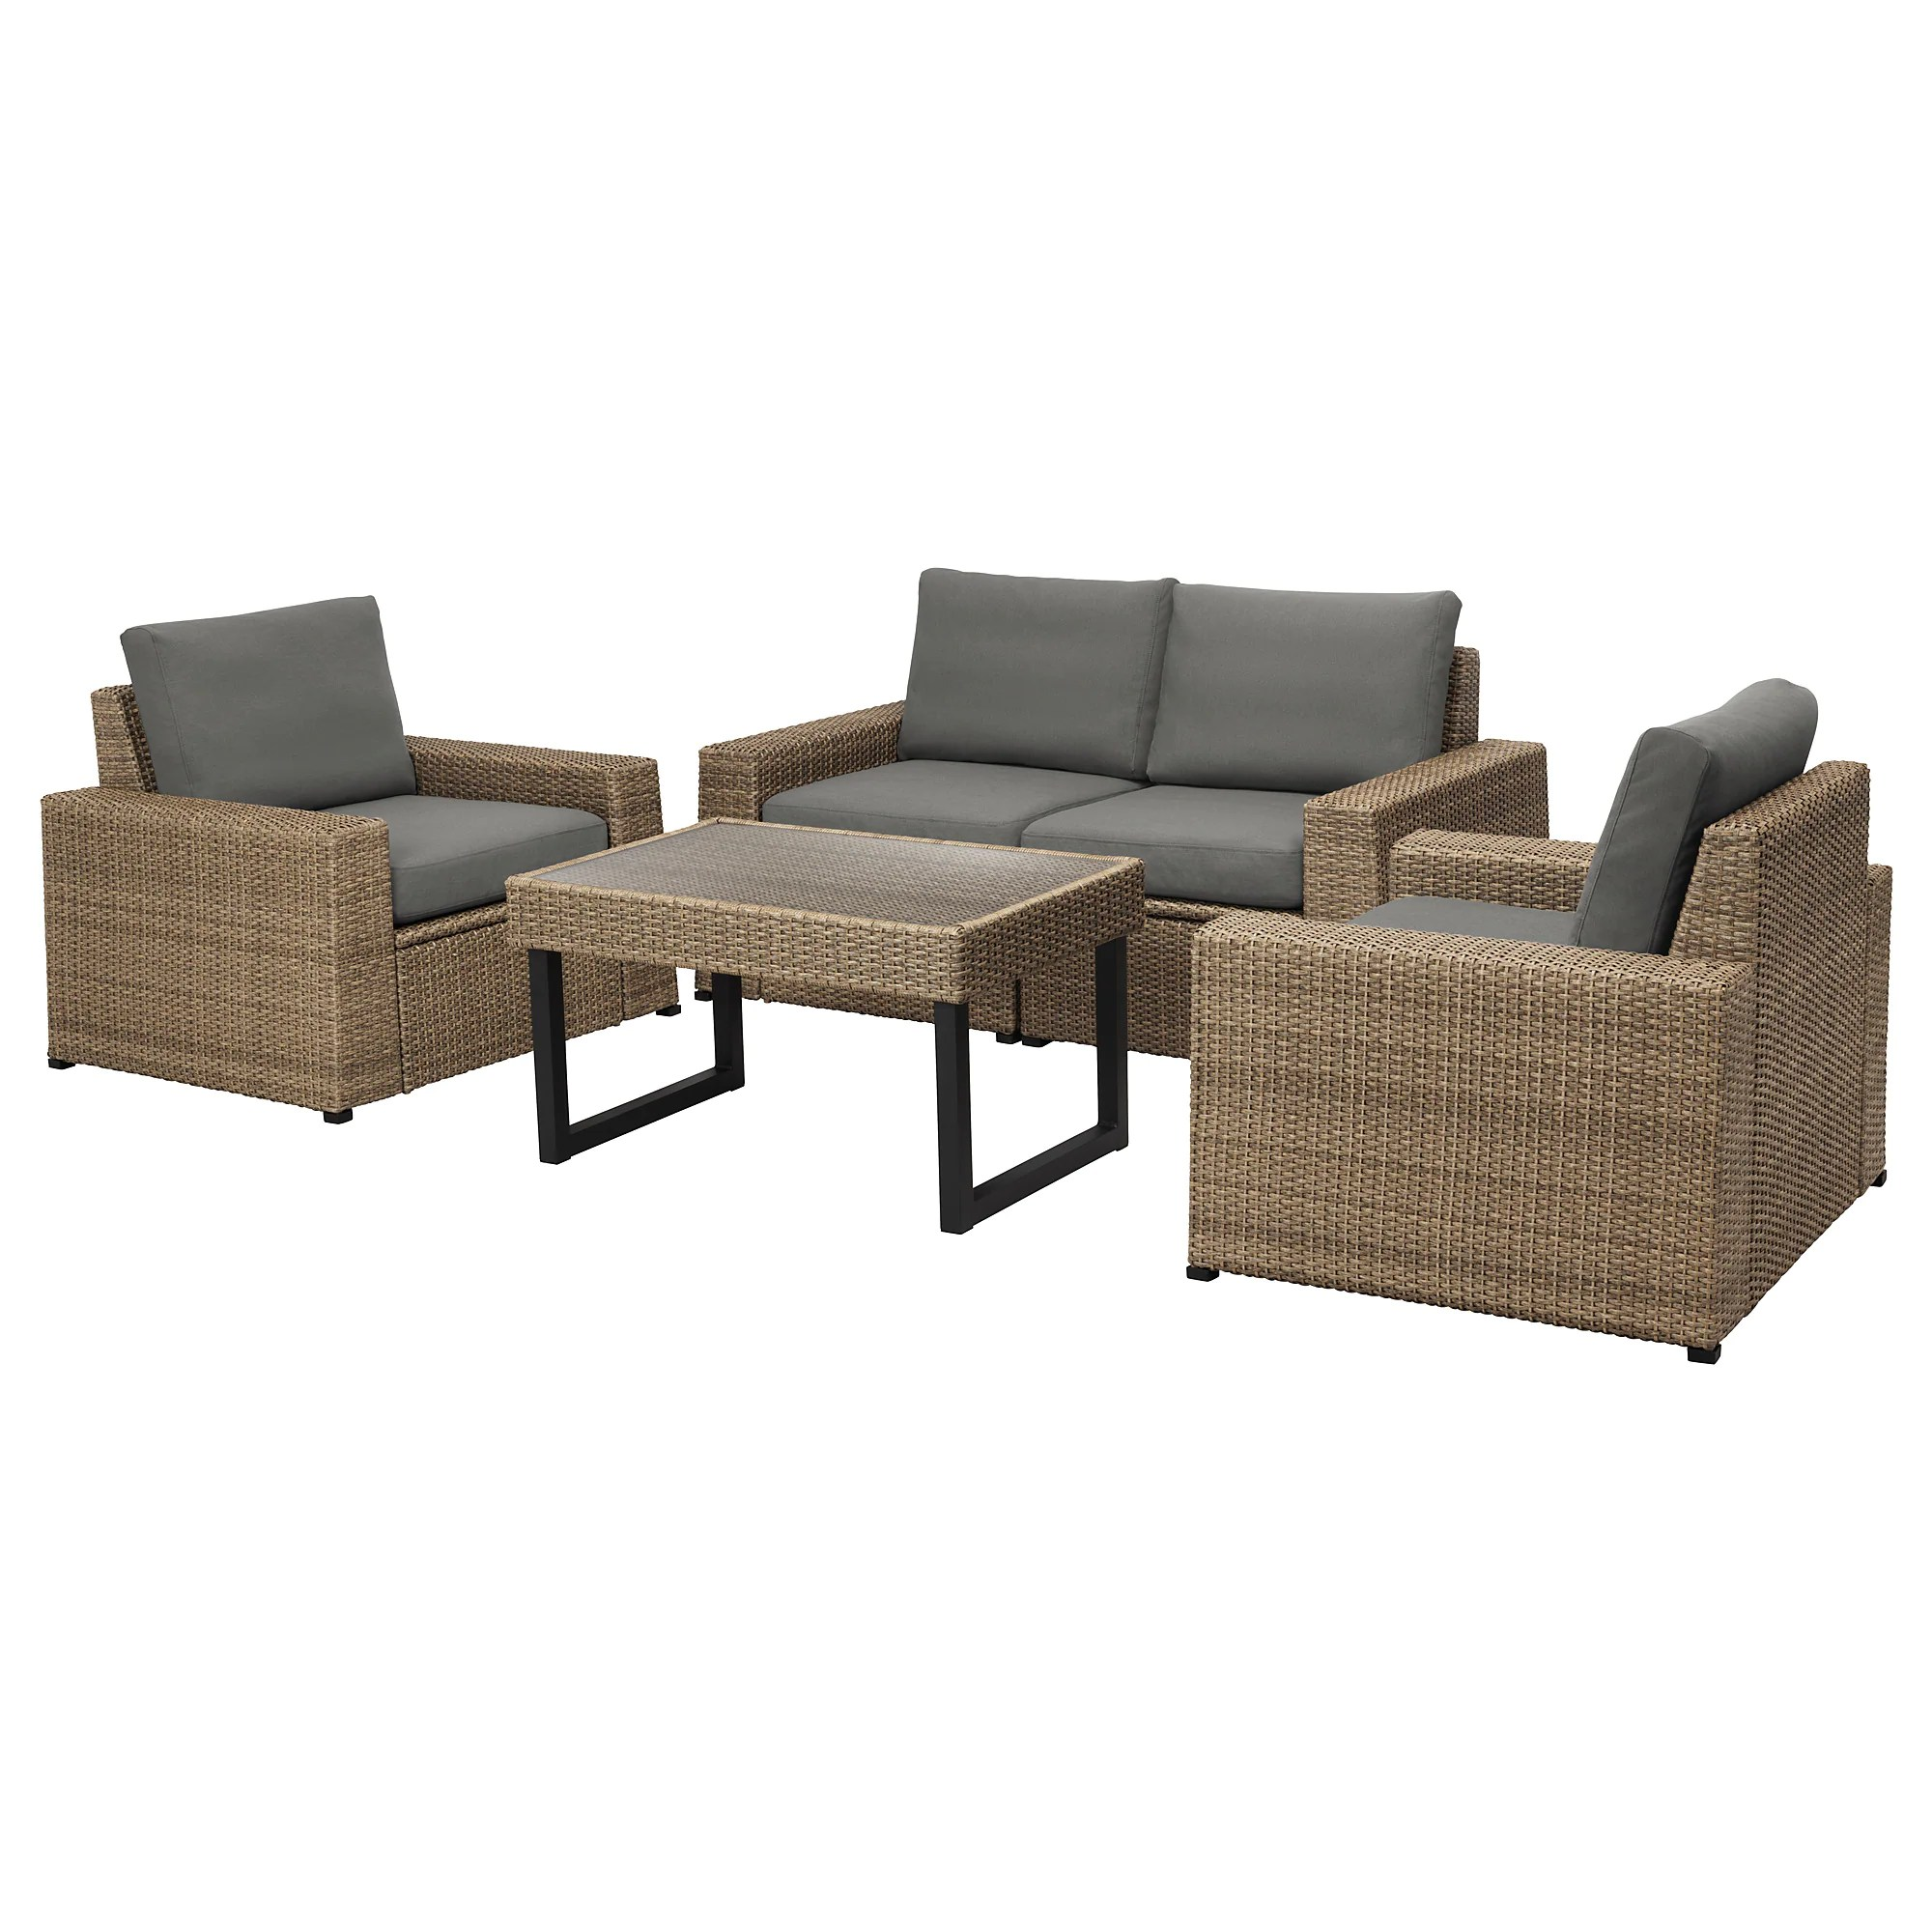 Rattan Table SollerÖn 4 Seat Conversation Set Outdoor Brown Hållö Beige